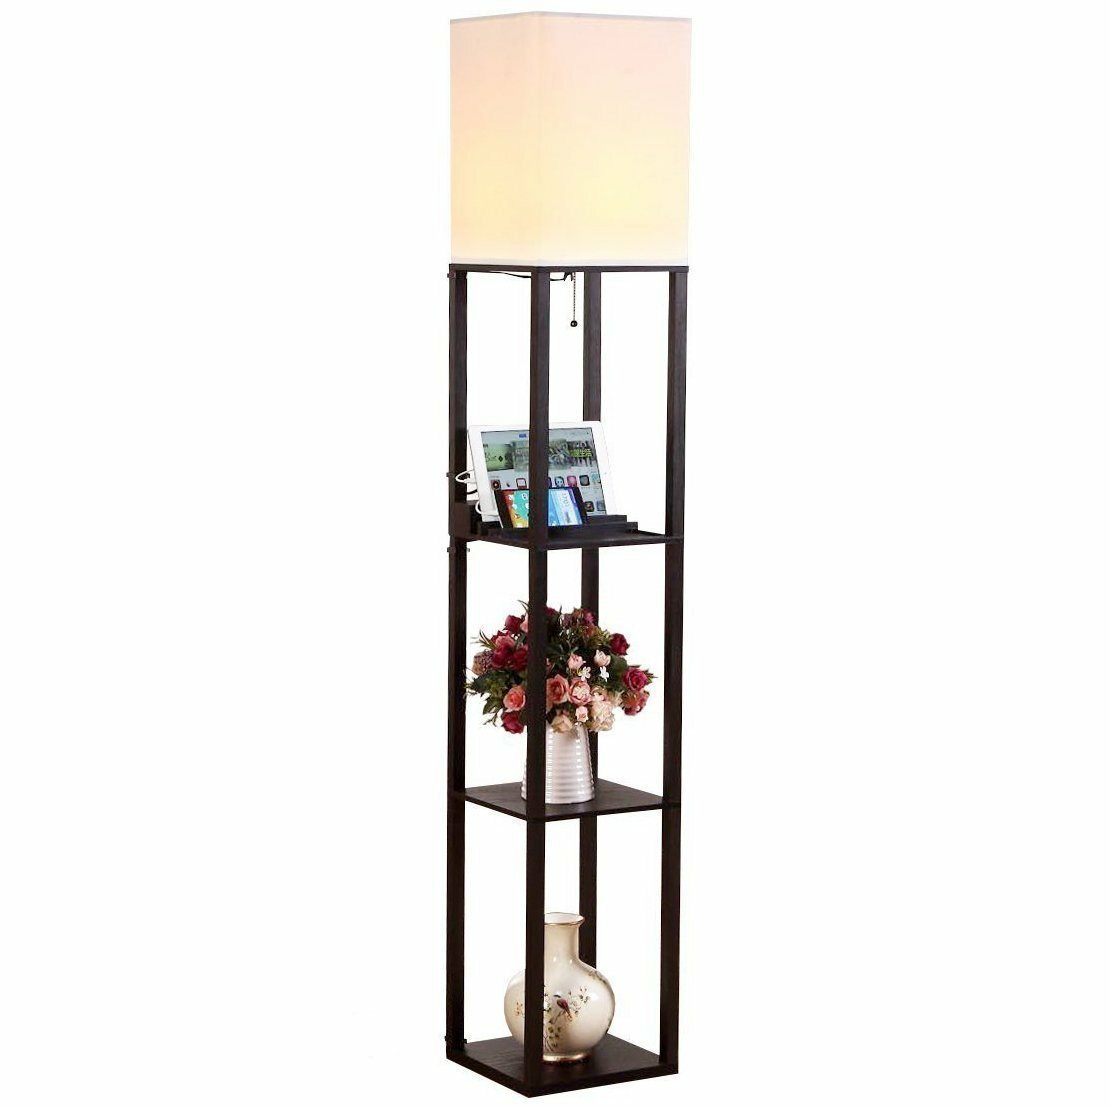 Maxwell USB Shelf 63 Floor Lamp